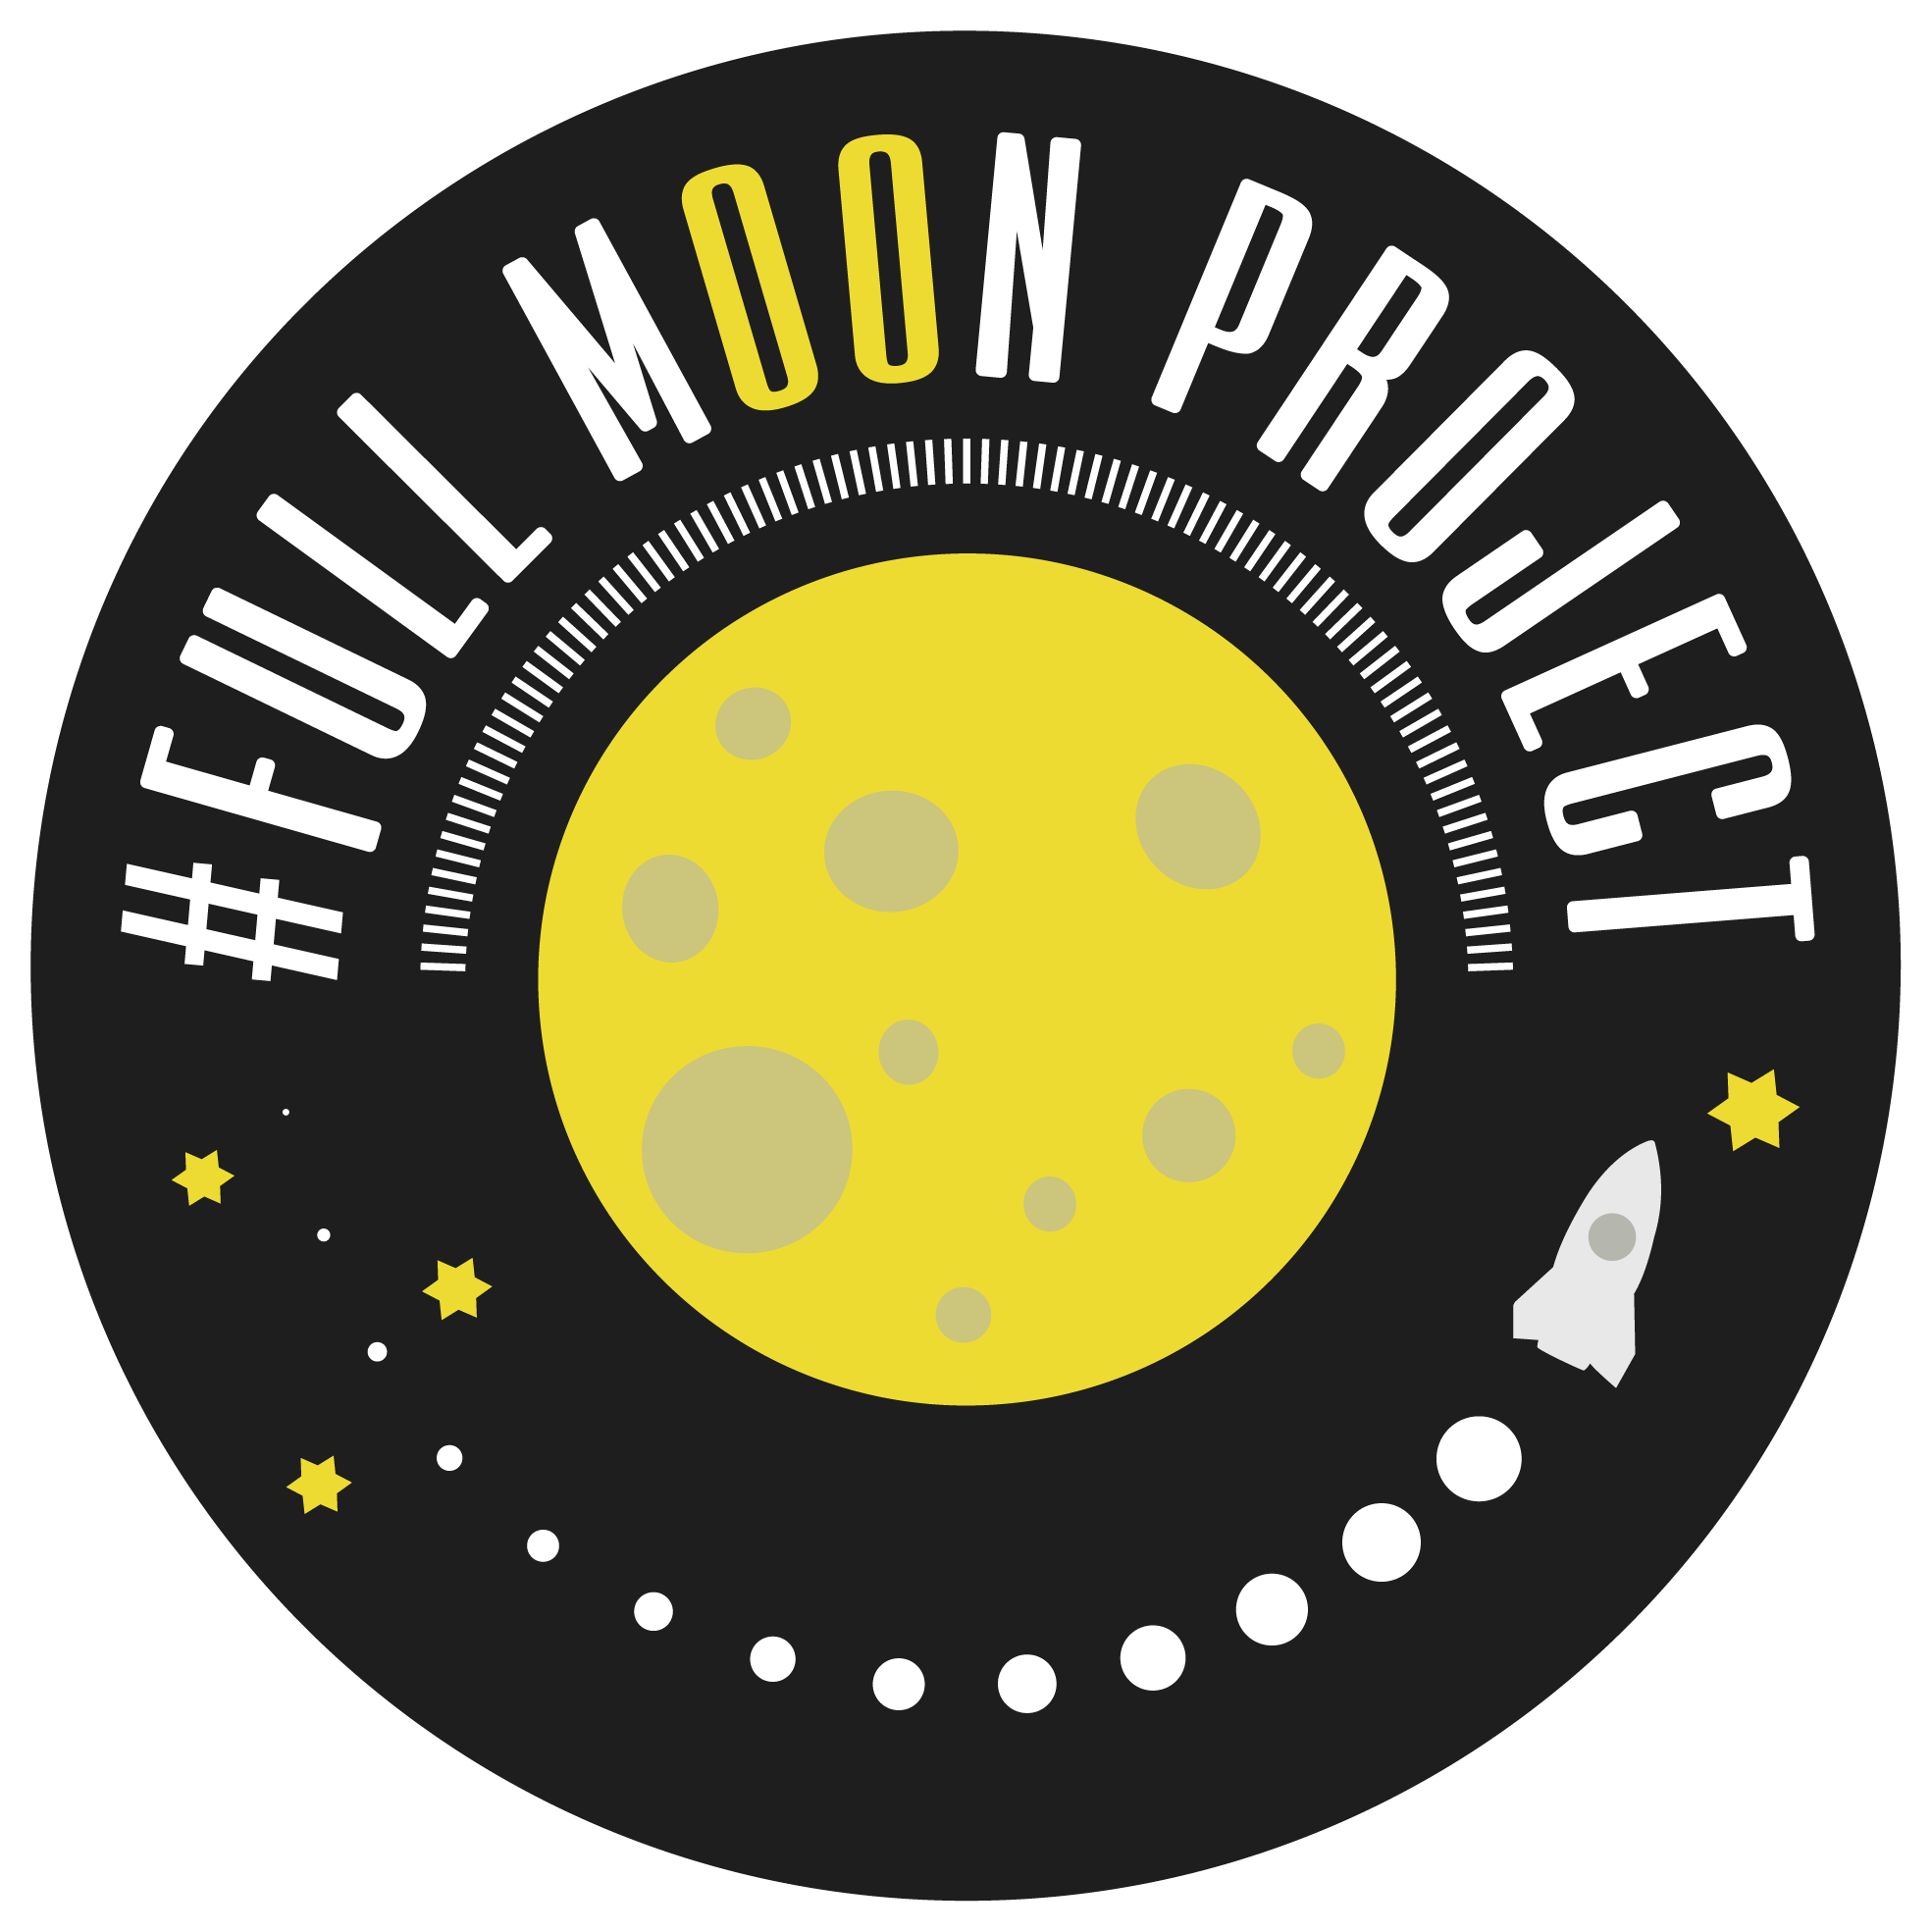 FULL MOON PROJECT